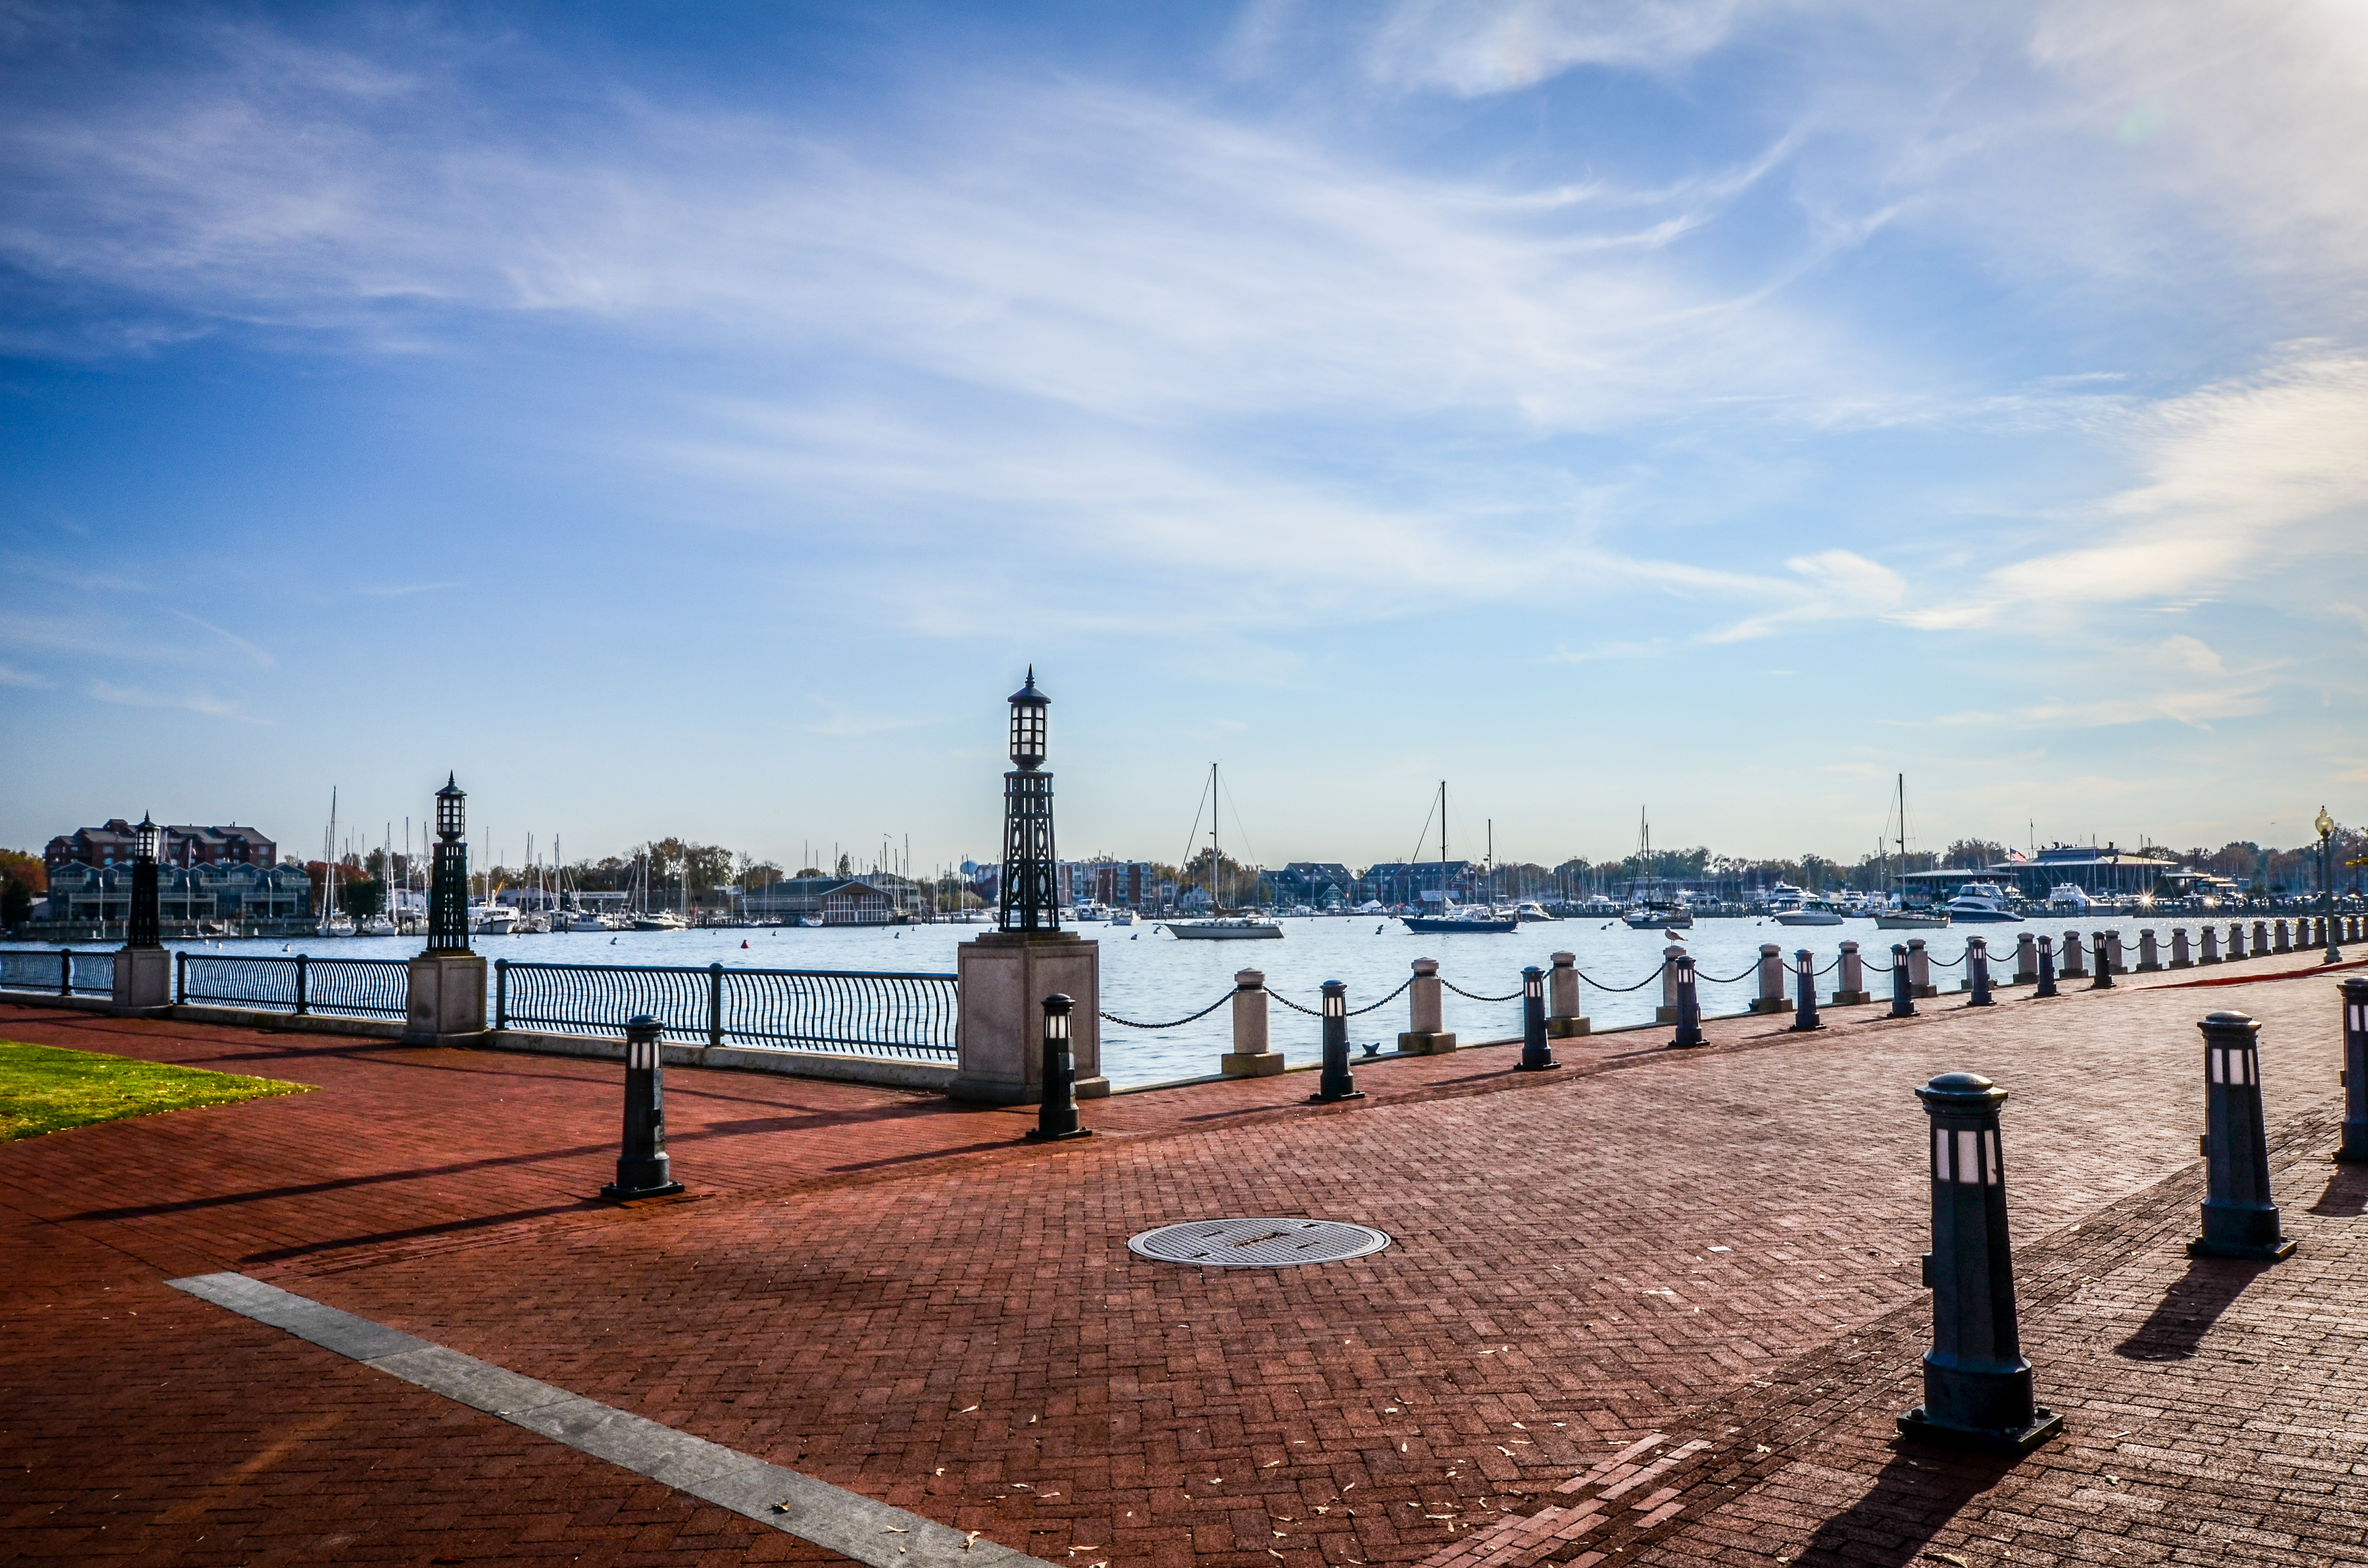 7 Towns In Maryland With Brick And Cobblestone Streets